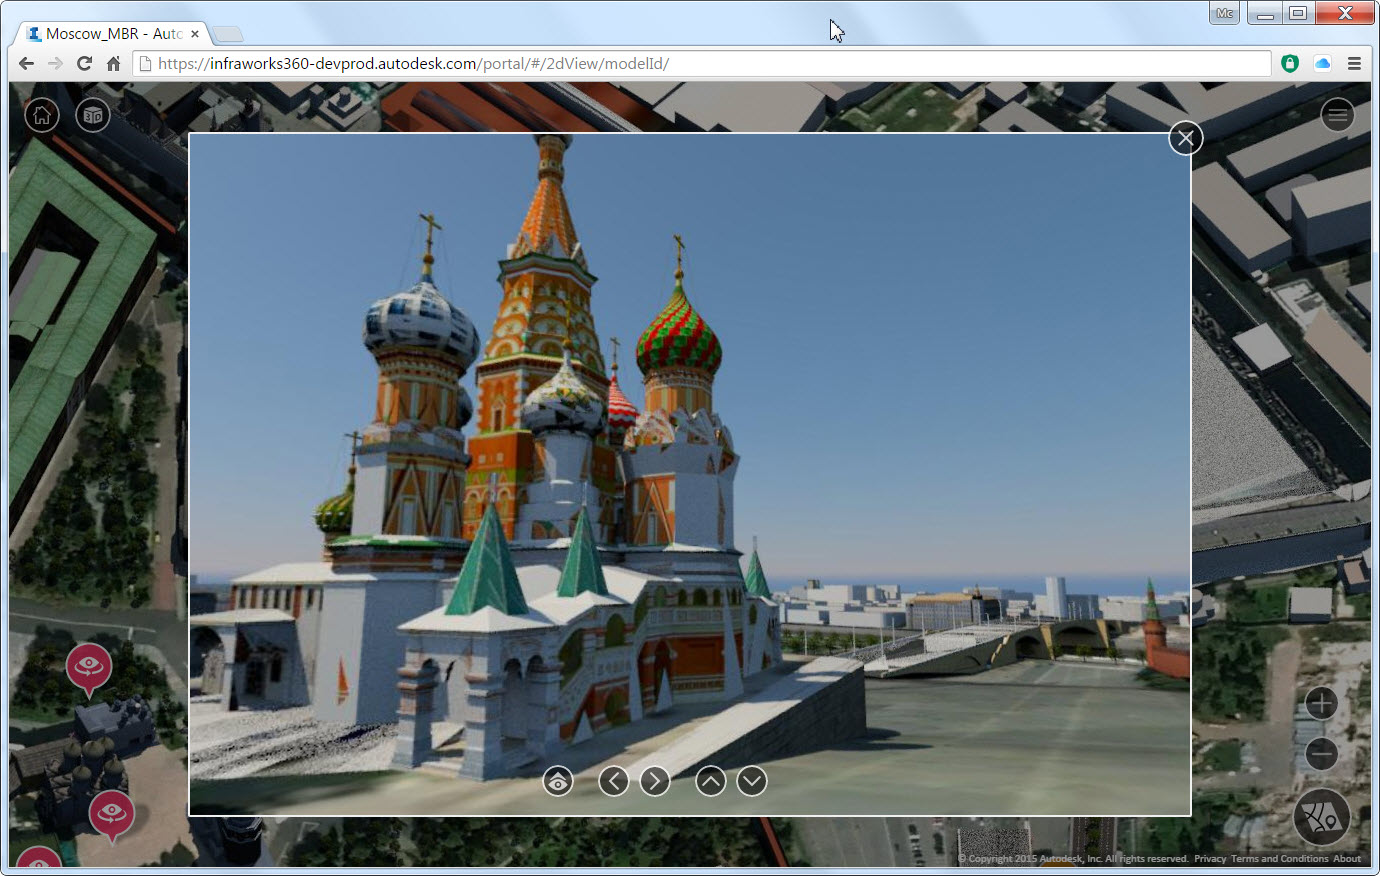 Infraworks-360-web-moscow-3-3500-3500